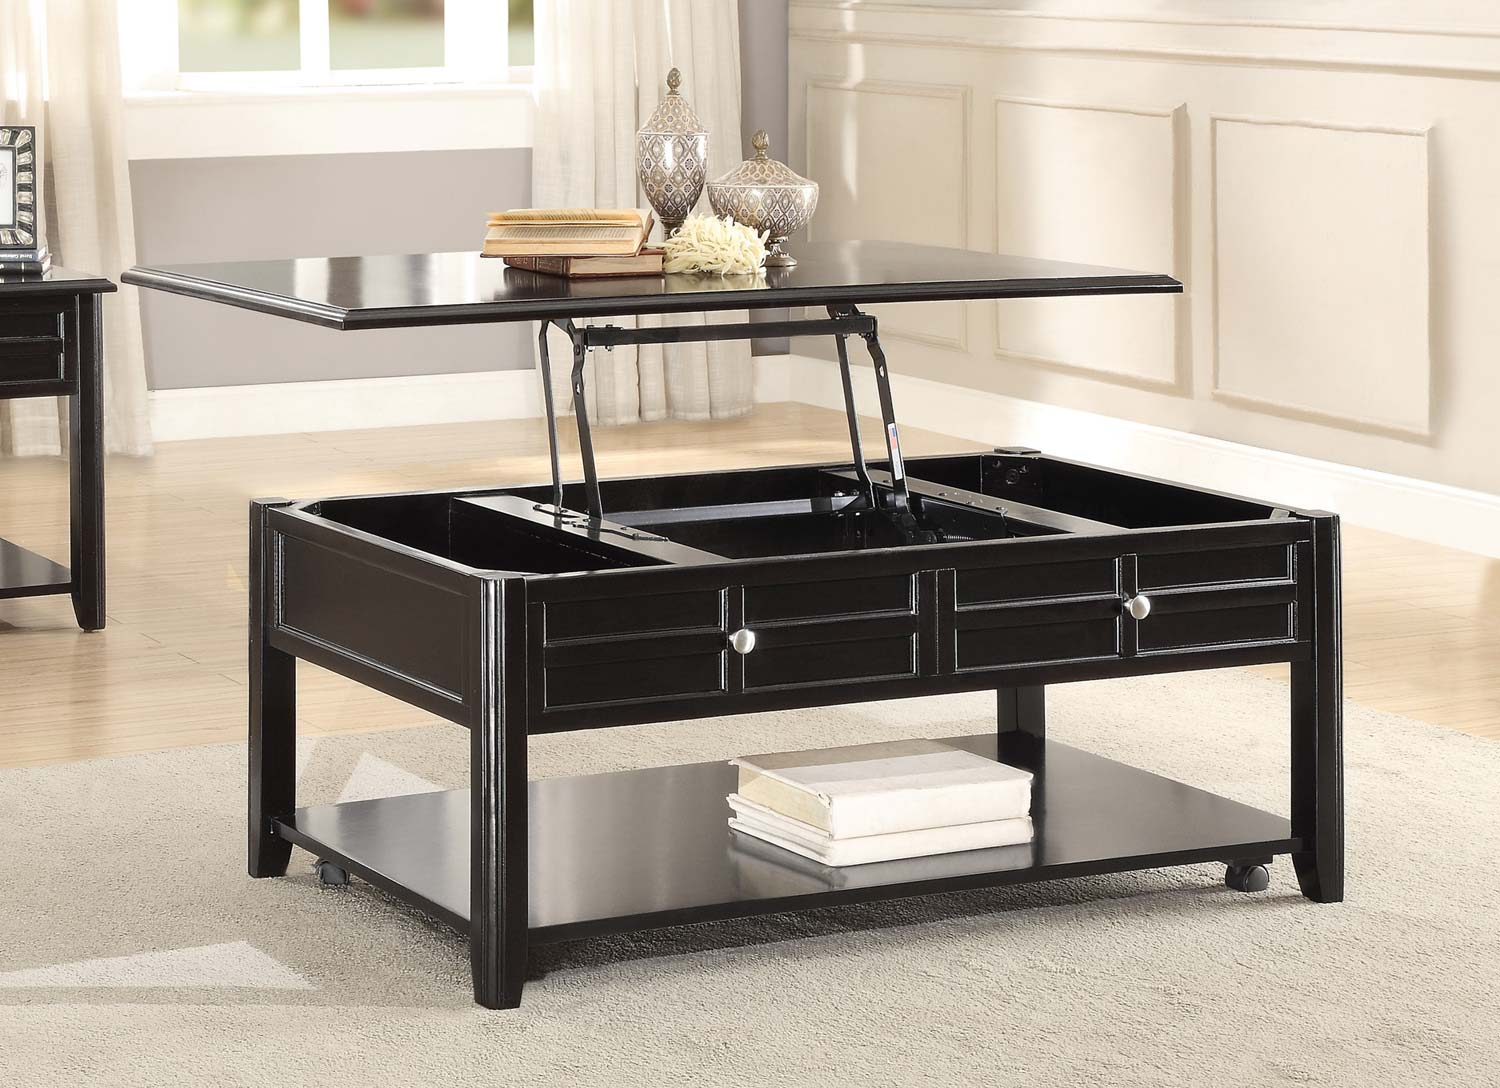 Homelegance Carrier Cocktail Table with Lift Top on Casters - Dark Espresso